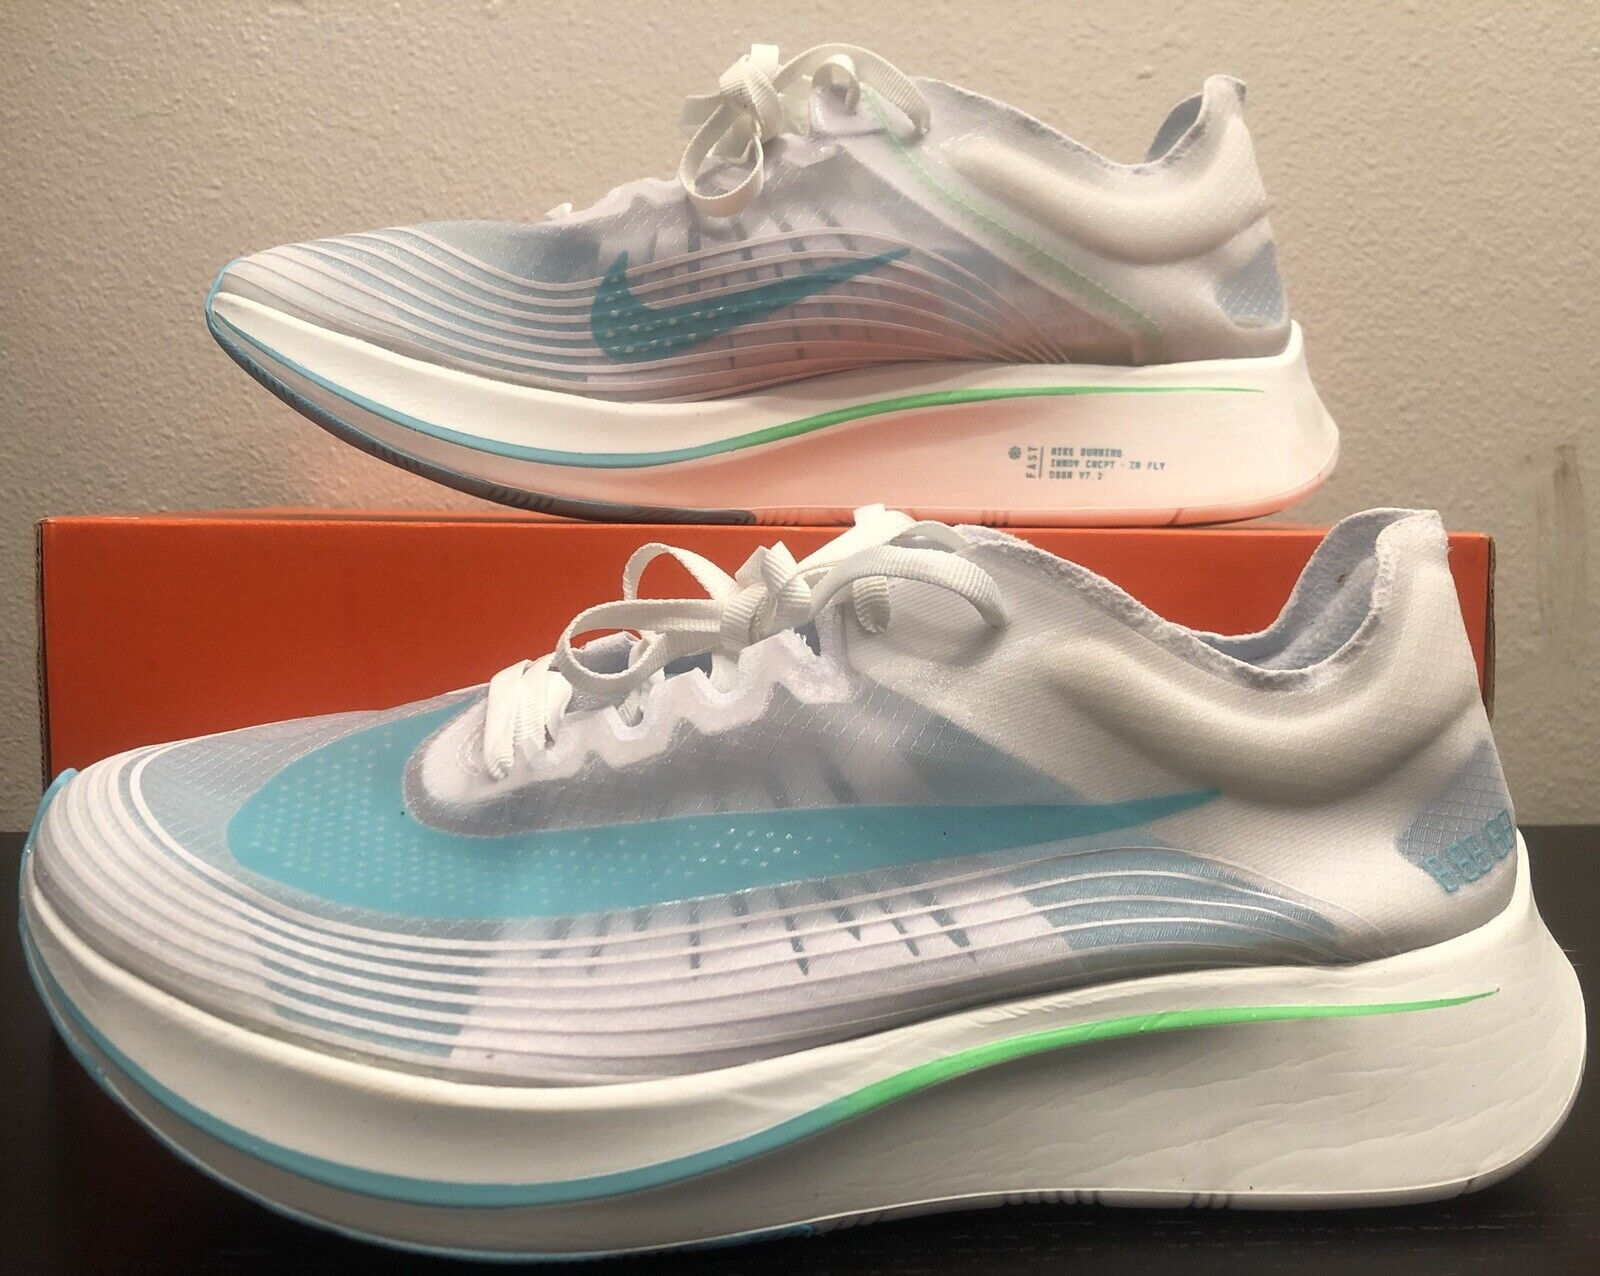 super popular 1448e 507a8 Nike Zoom Fly SP Running Shoes London Rage Green Aj9282 103 for sale online    eBay